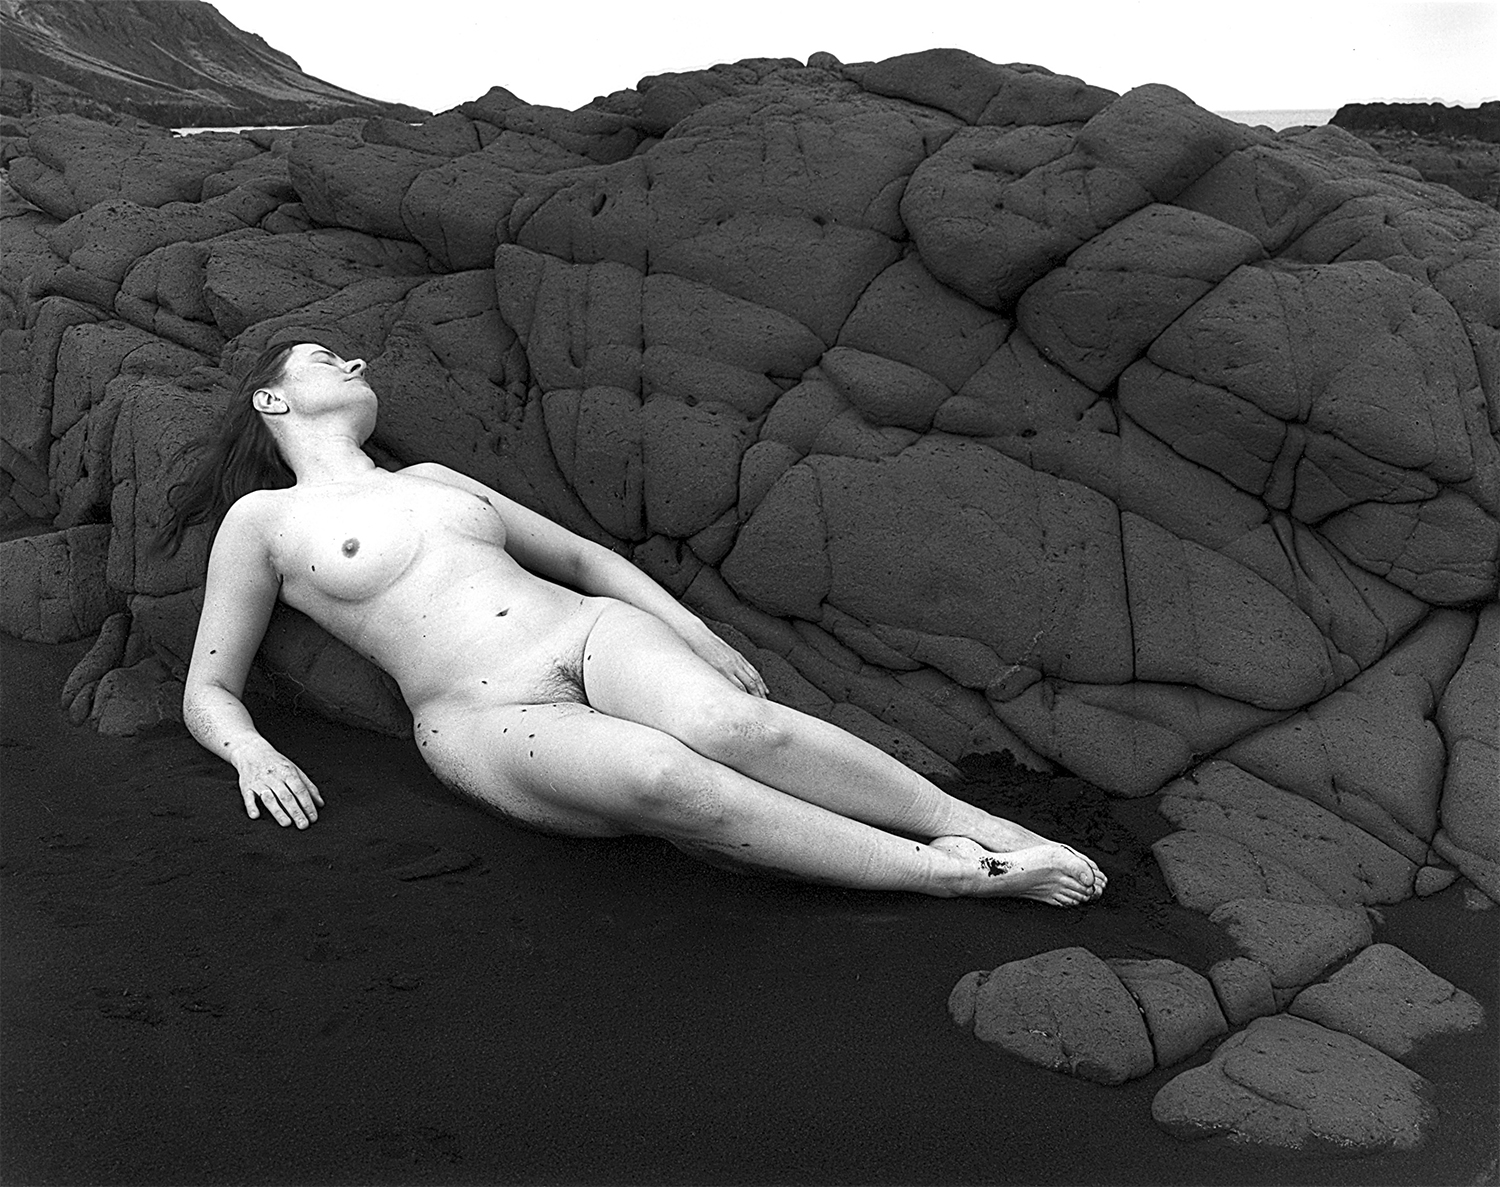 Agnieszka Sosnowska   Nude, Self-portrait, Landsendi, Iceland, 2012  Selenium toned silver gelatin print 7 x 9, signed and numbered edition of 10 $185